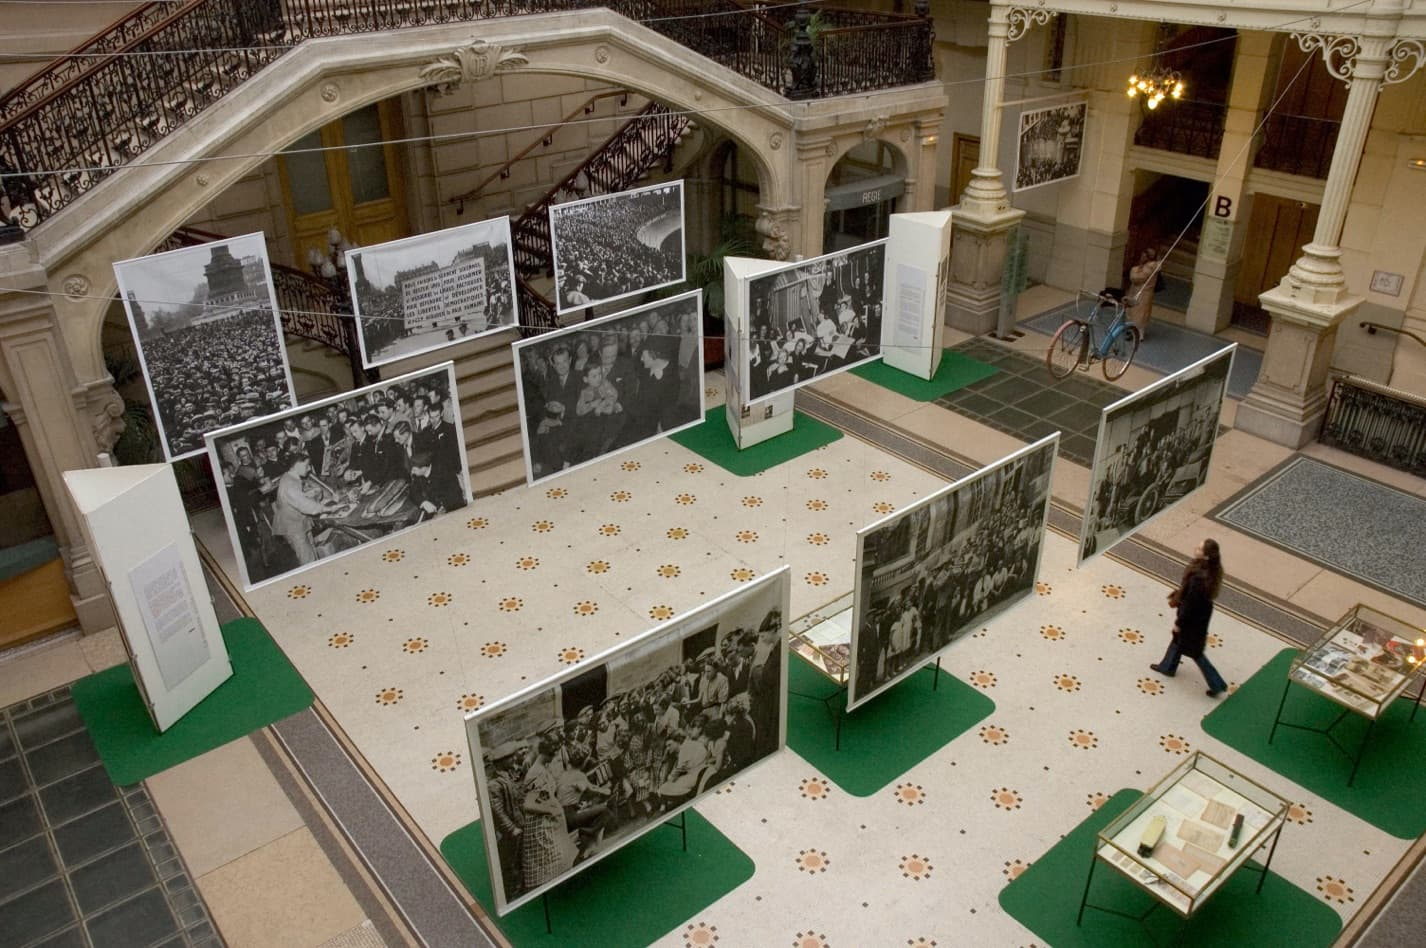 """70 years of the Popular Front"" at the town hall of the 18th arrondissement, Paris. © Dominique Lecourt / Roger-Viollet"